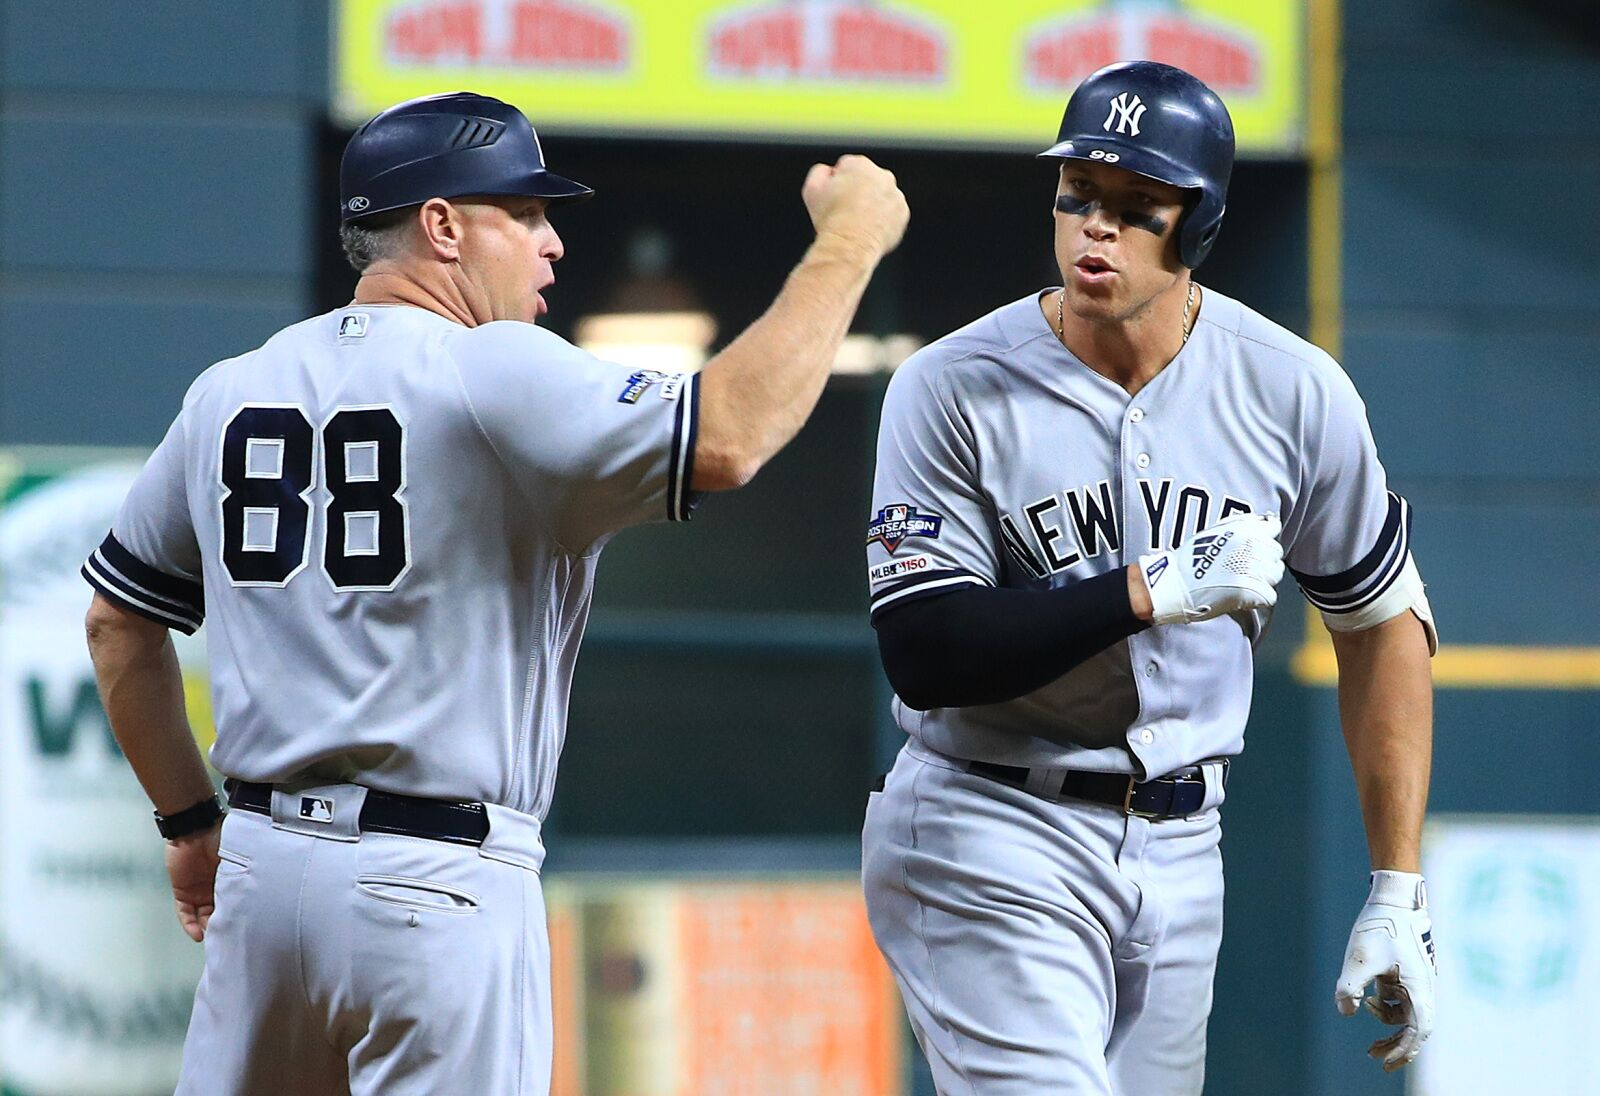 Yankees Phil Nevin caught wind of Astros stealing signs in ALCS Game 1